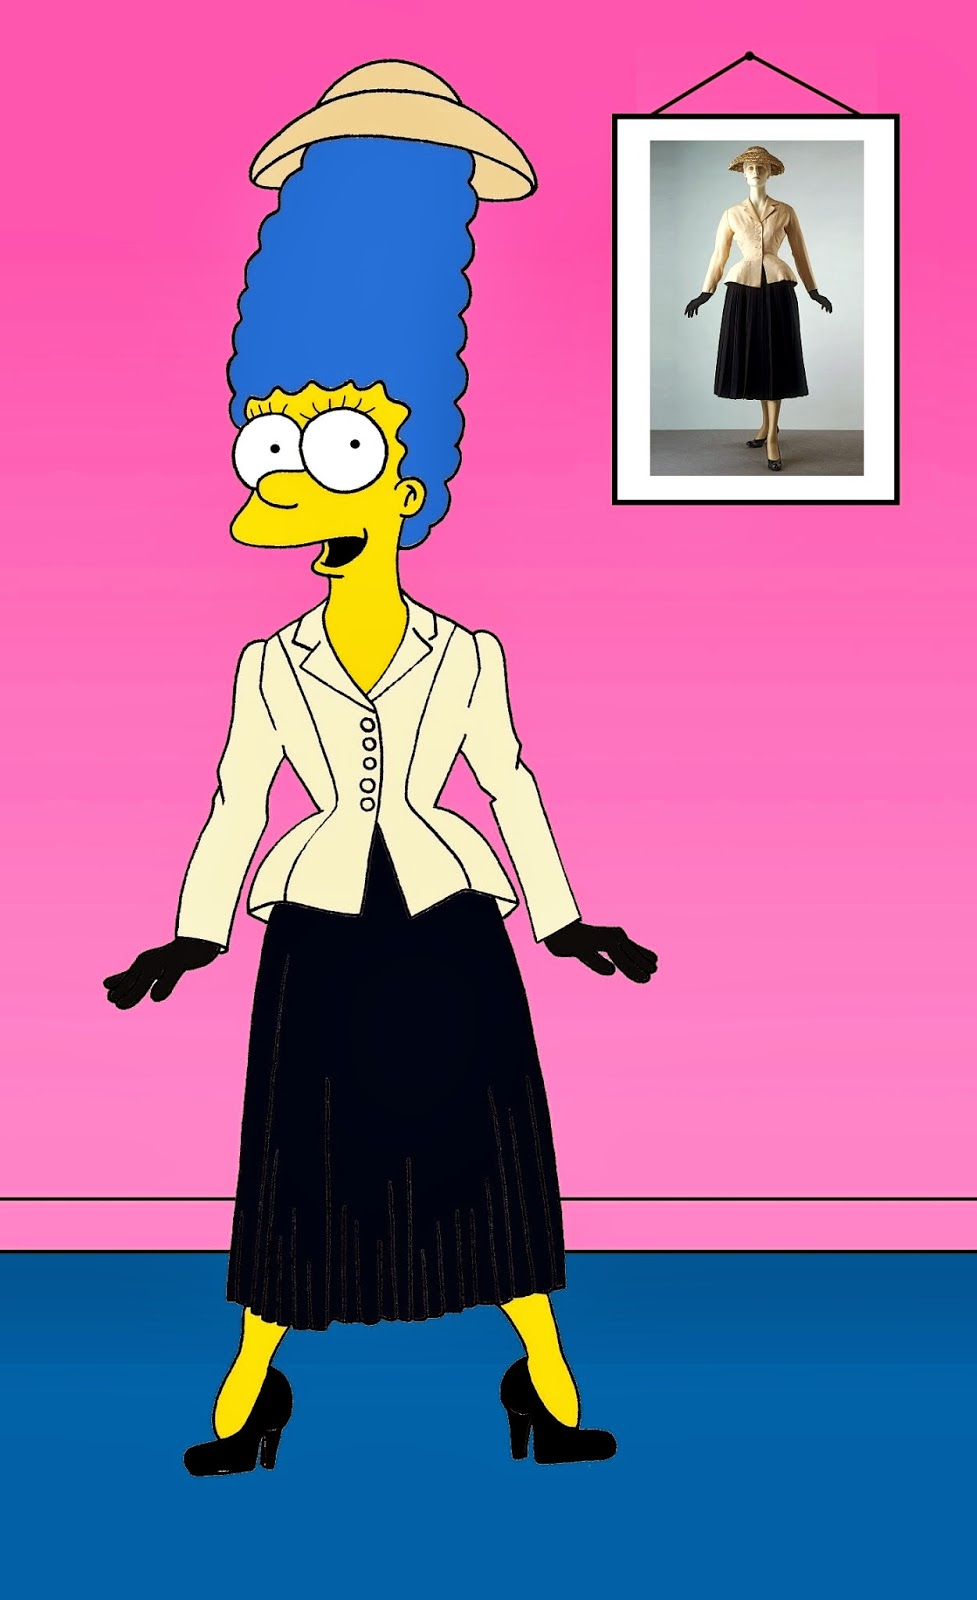 Marge Simpson Christian Dior Bar Jacket Art Cartoon Illustration Satire Sketch Fashion Luxury Style Iconic Dresses all the time The simspsons  Humor Chic by aleXsandro Palombo